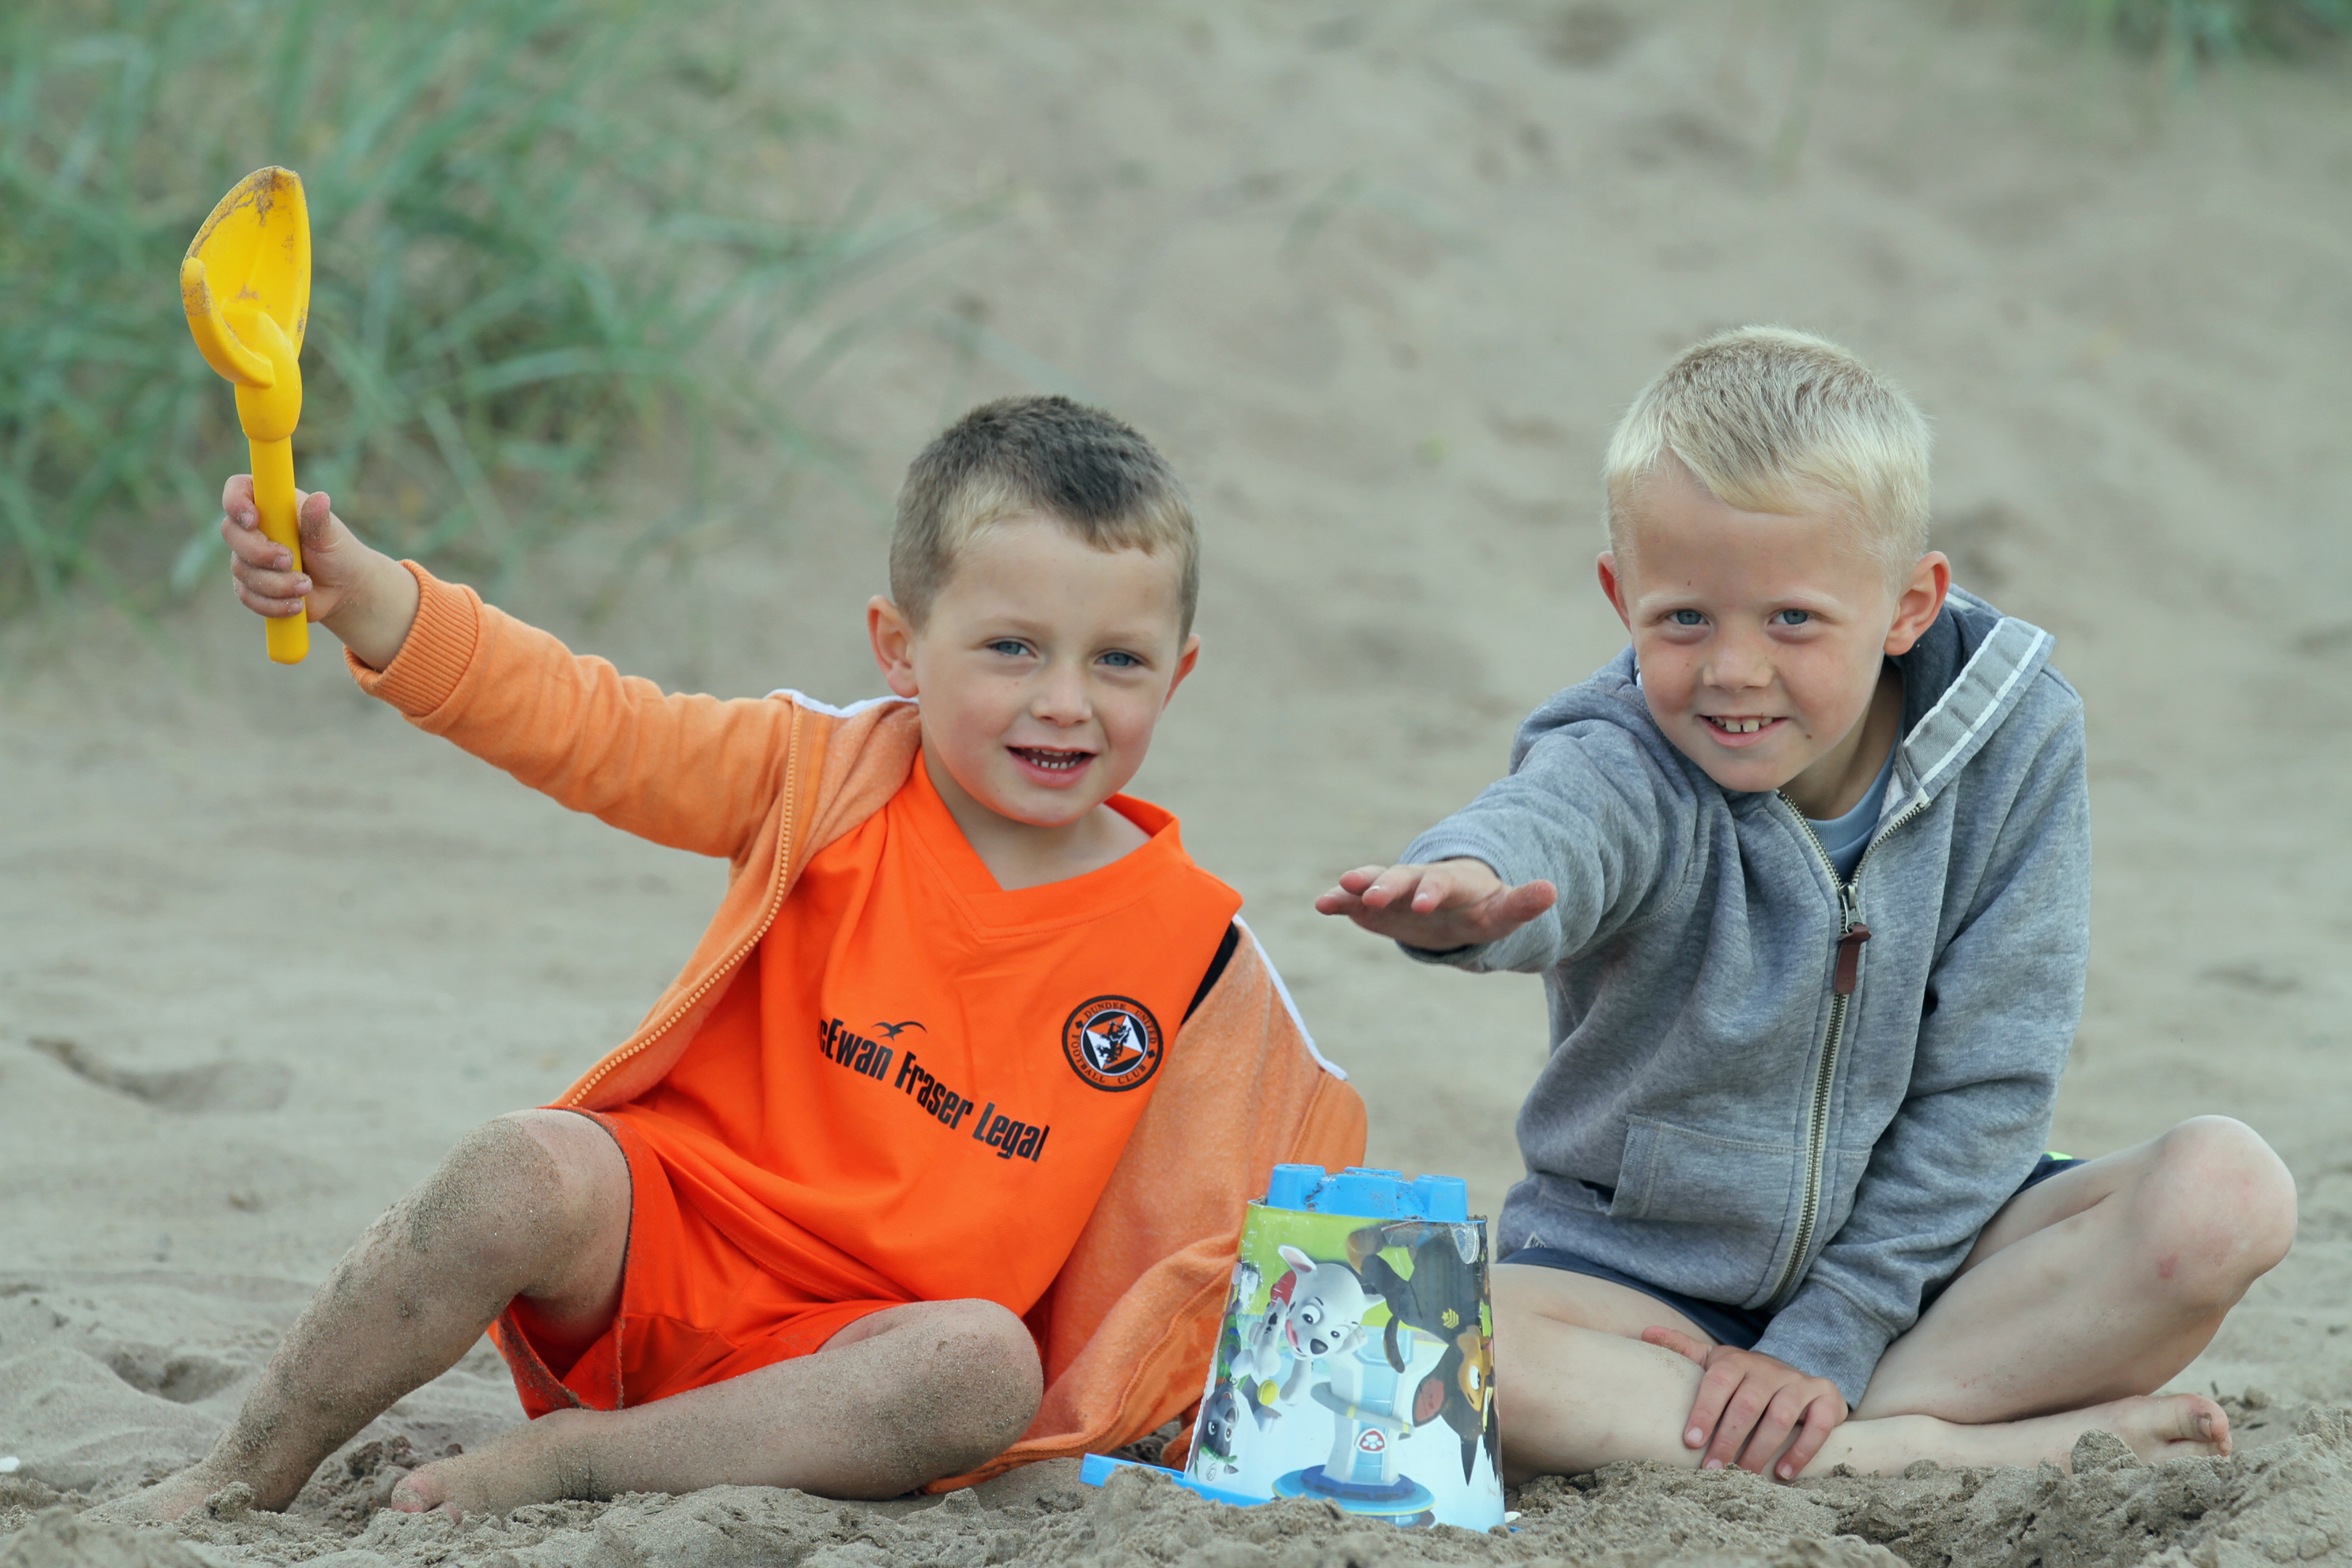 Charlie Lamont-Millar, 4, and Ollie Fraser, 6,from Whitfield building a sandcastle at Broughty Ferry beach